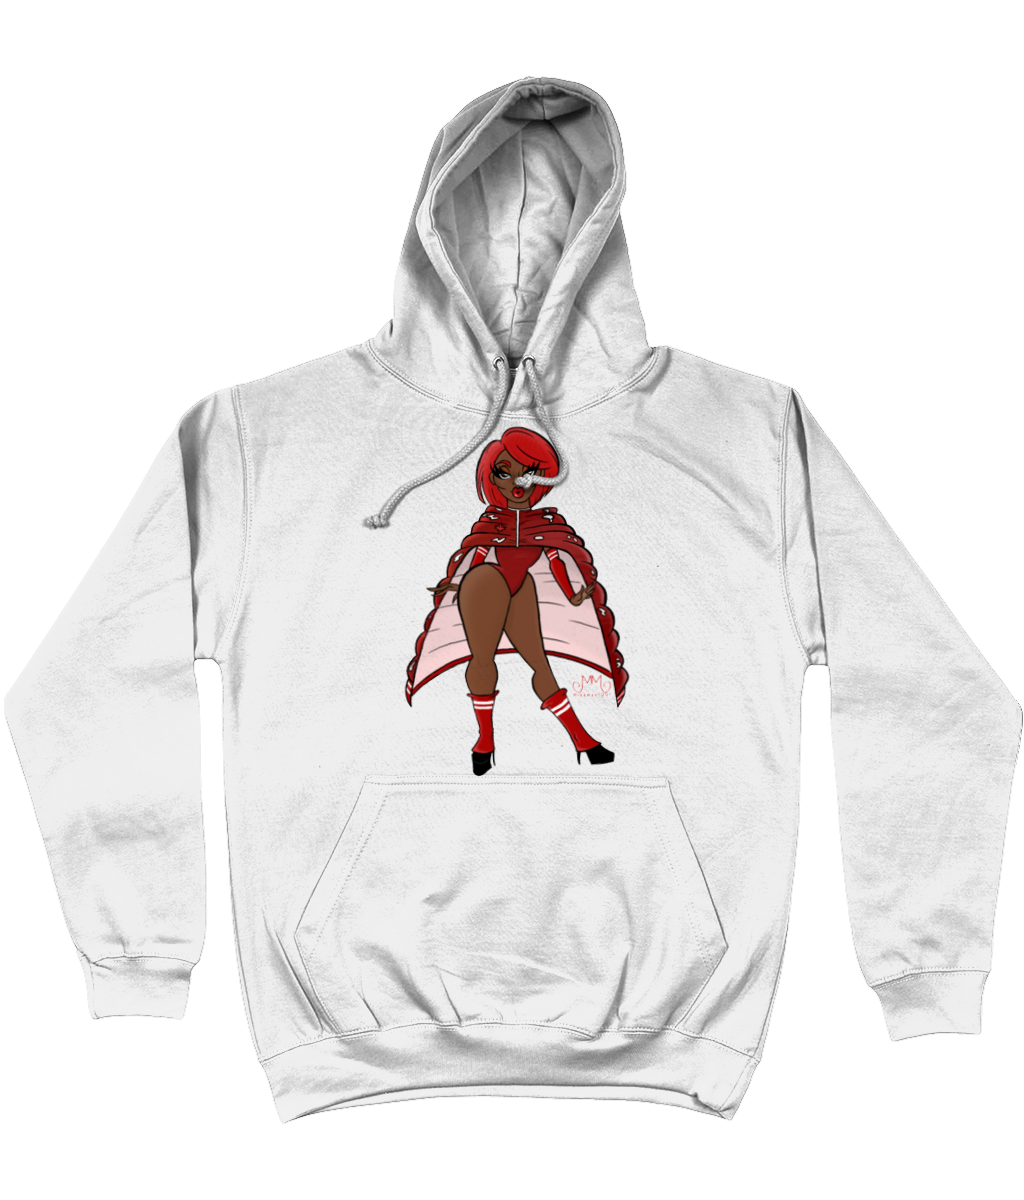 Anastarzia Anaquway - Starzy x Moncler - Canuck Couture Hoodie